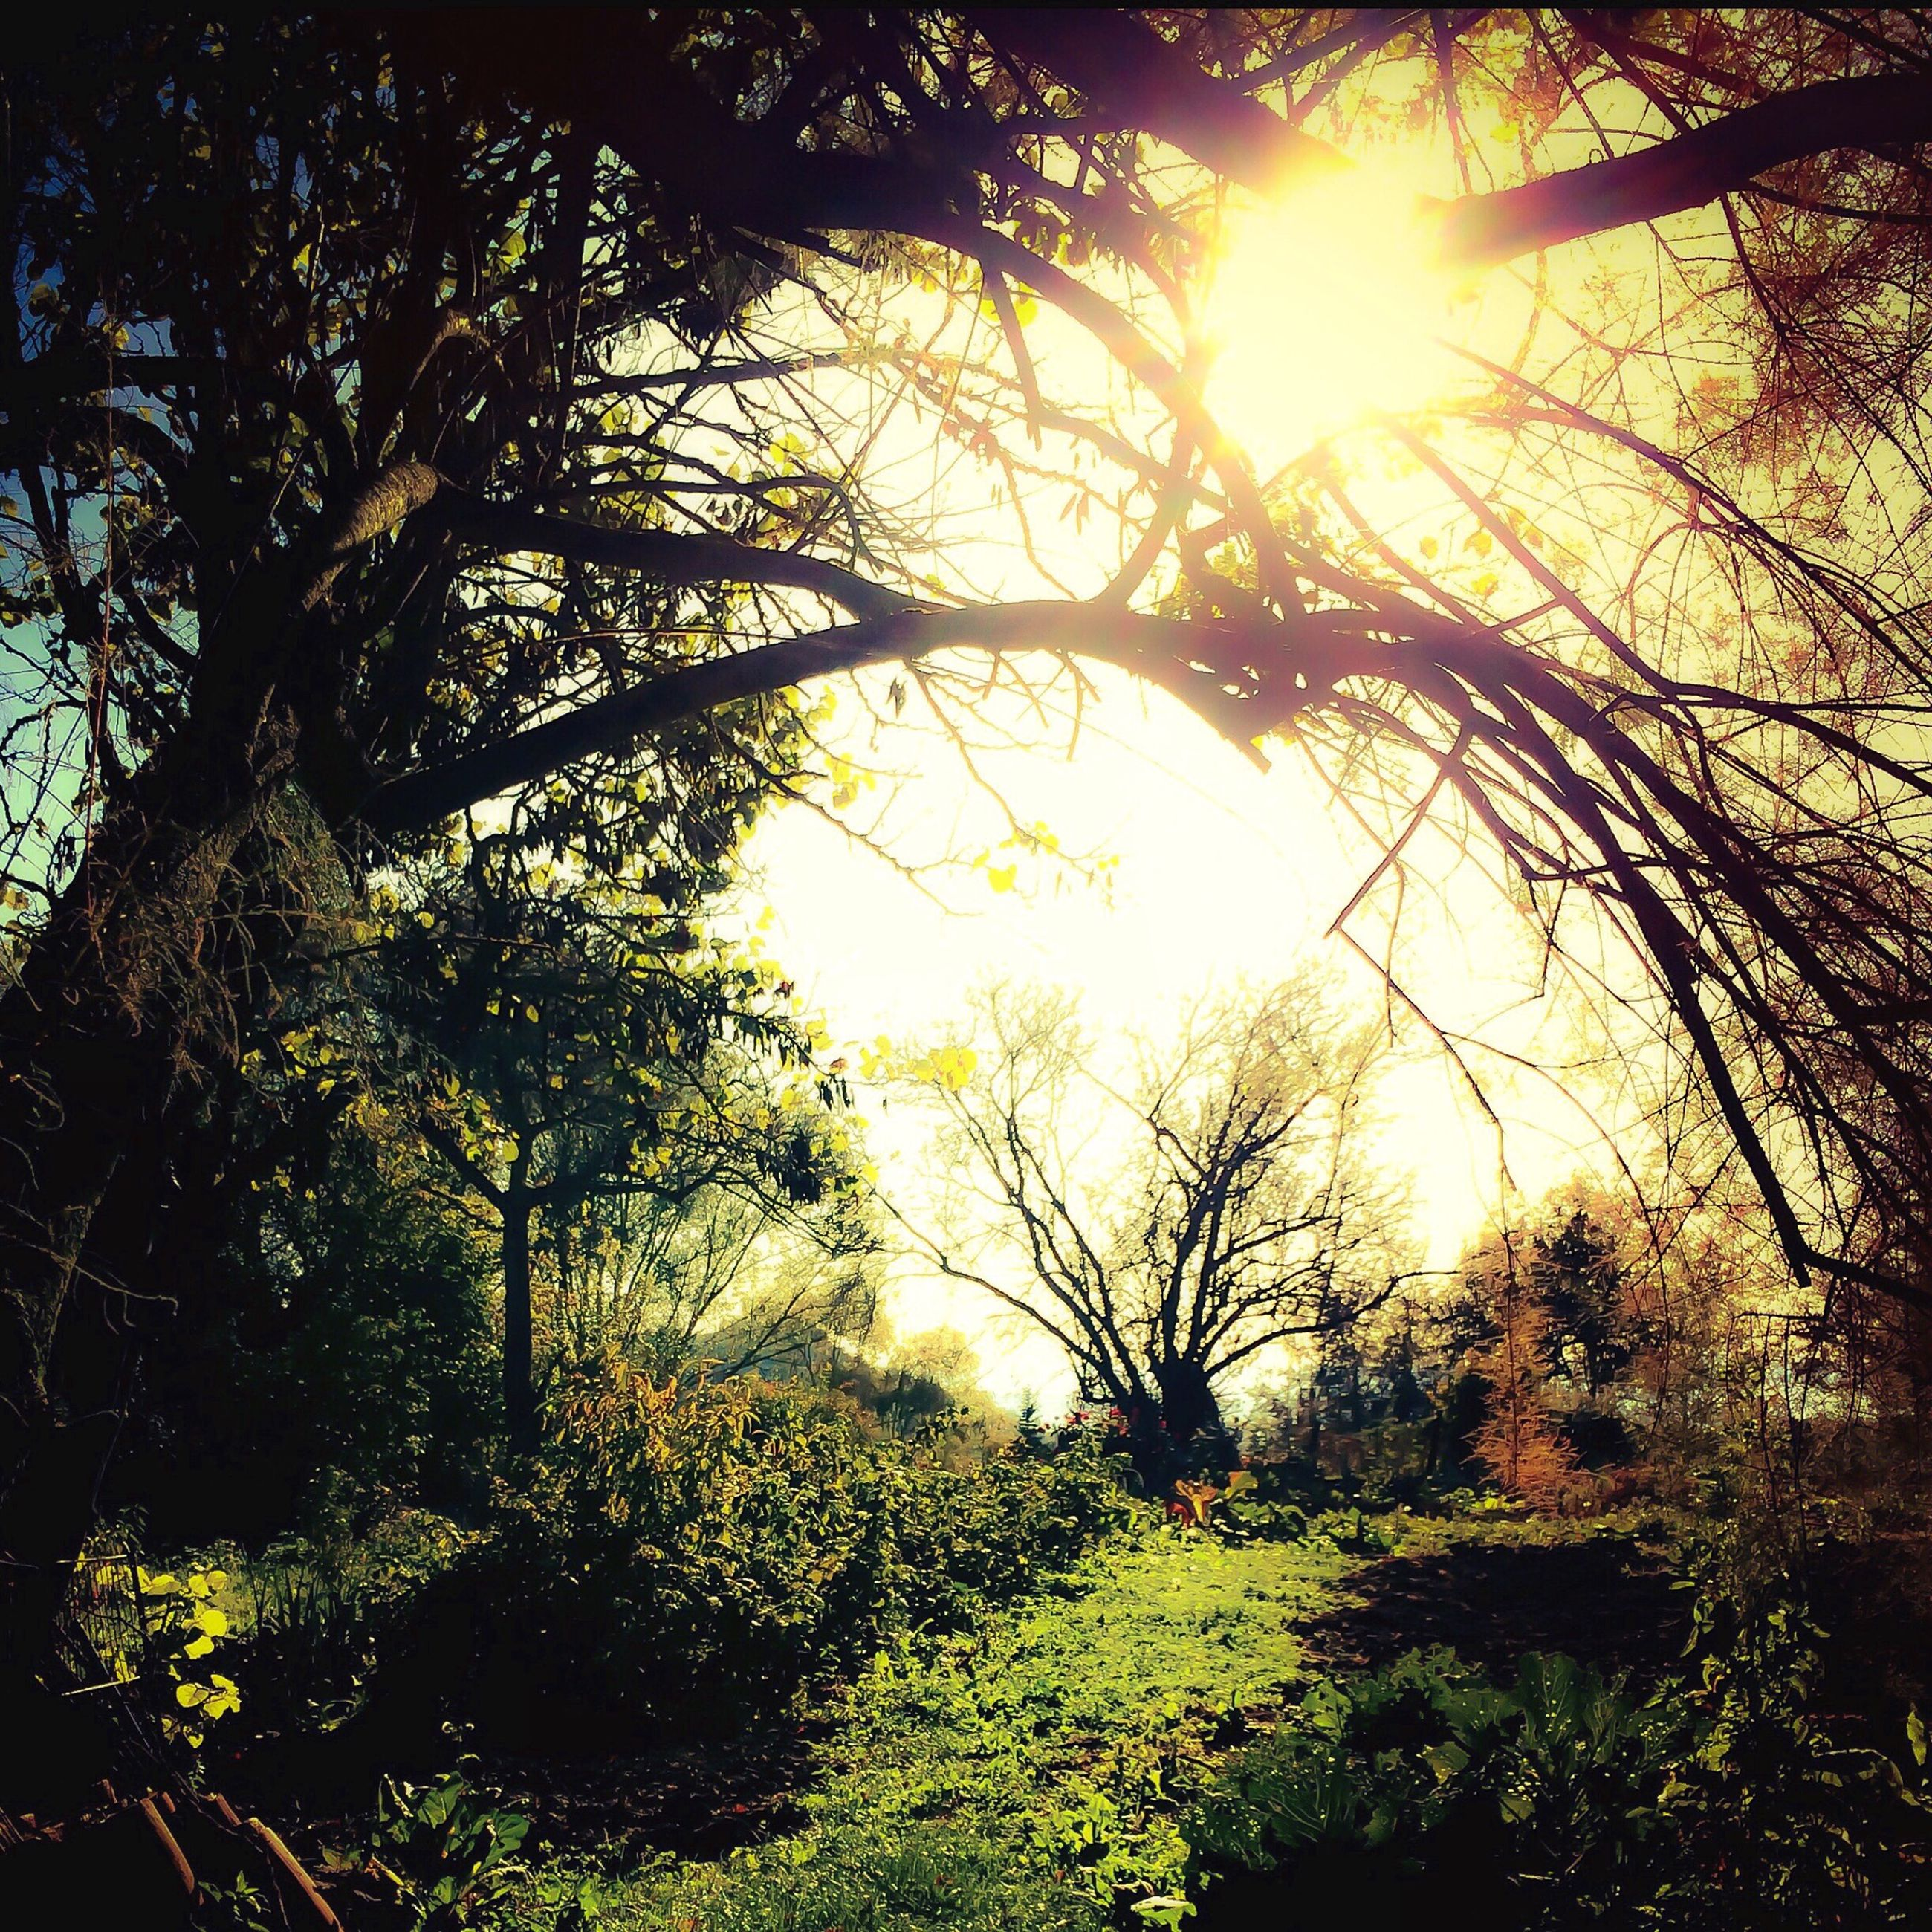 sun, sunbeam, tree, sunlight, lens flare, growth, tranquility, nature, beauty in nature, tranquil scene, grass, scenics, branch, sunset, bright, field, sunny, back lit, sky, plant